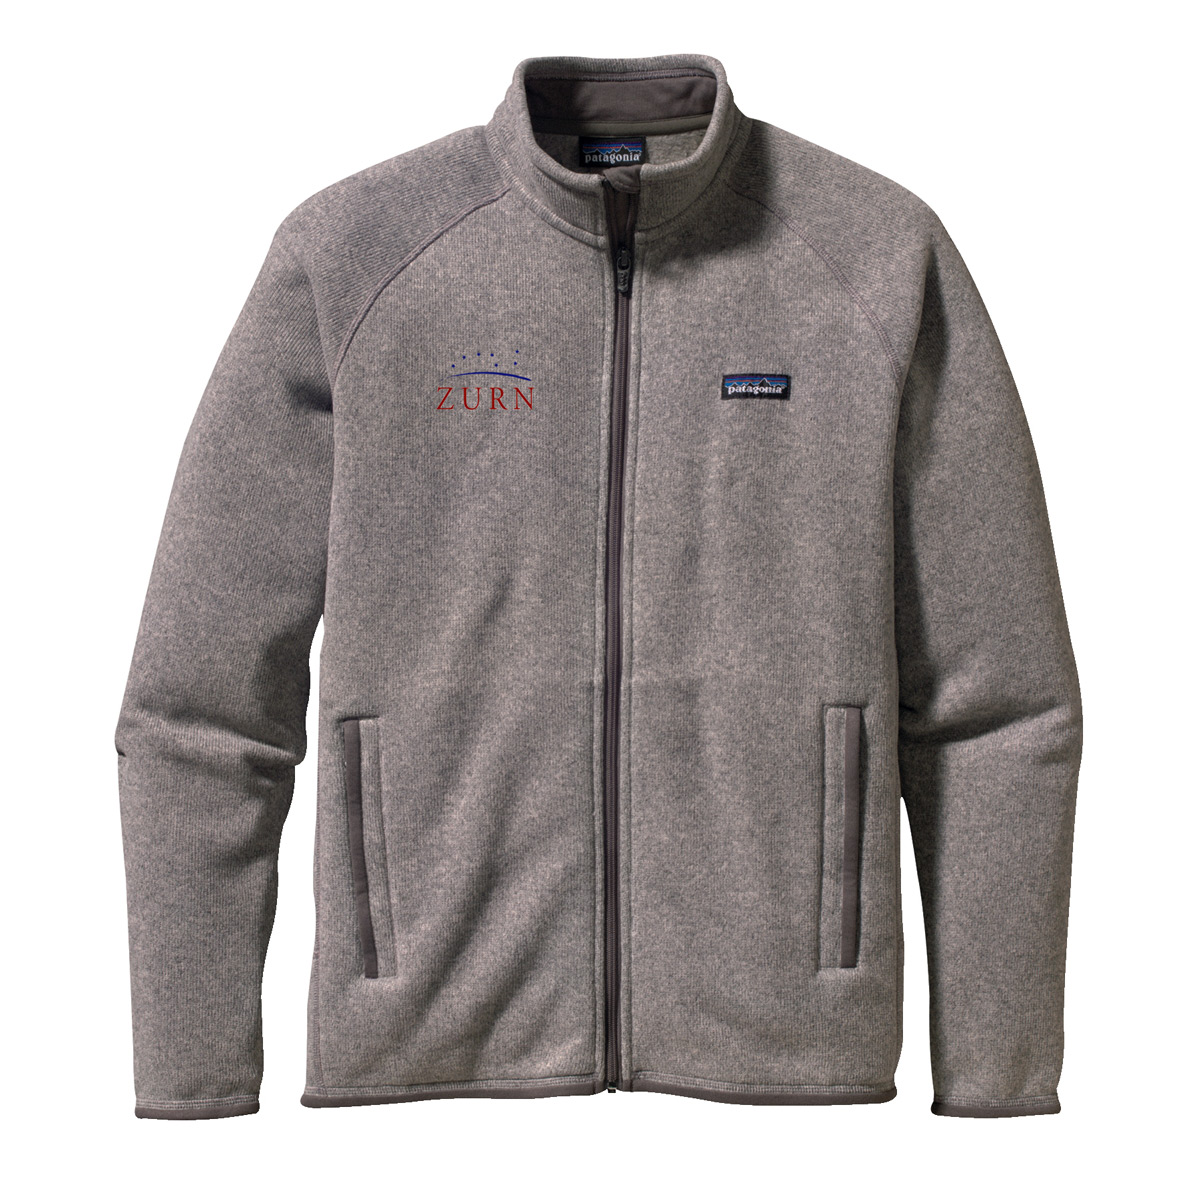 Zurn Yachts - Men's Patagonia Better Sweater Jacket